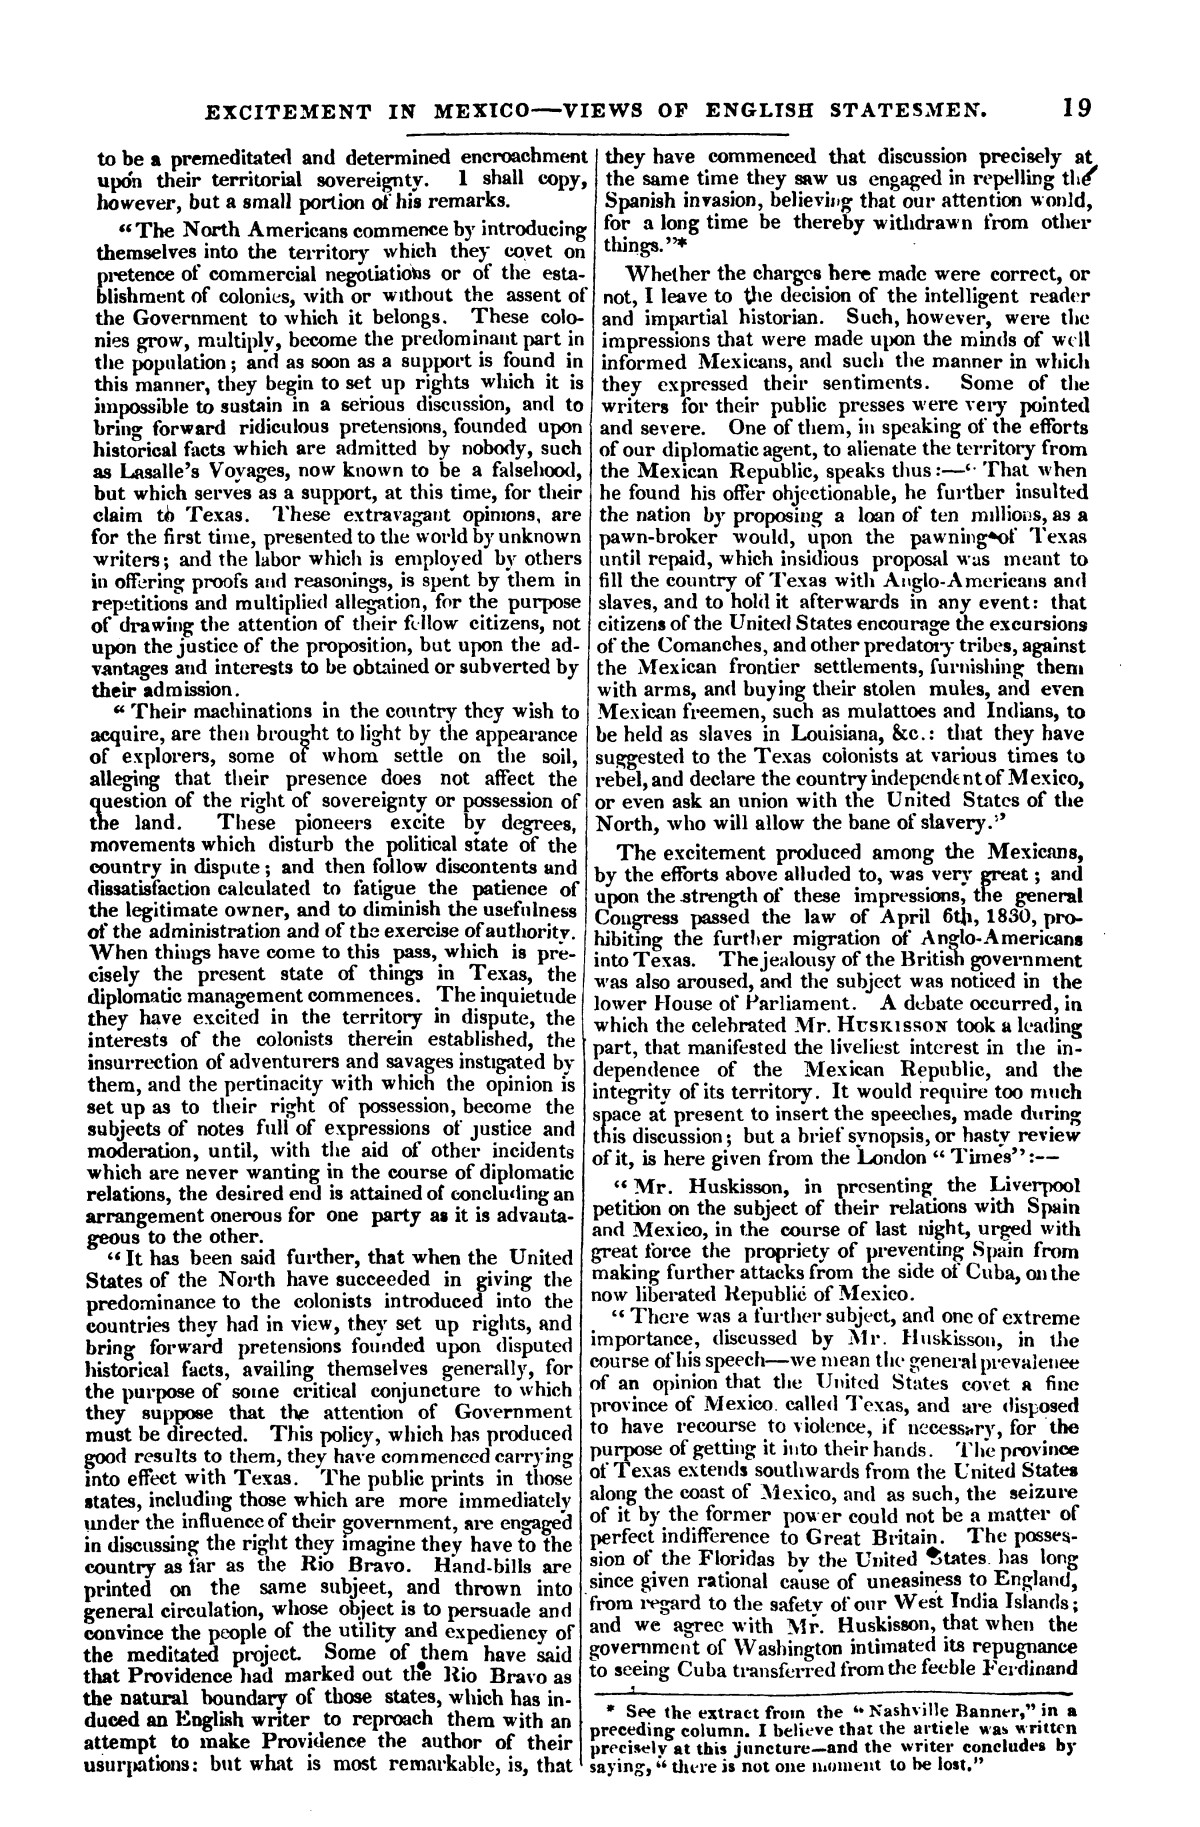 The war in Texas; a review of facts and circumstances, showing that this contest is a crusade against Mexico, set on foot by slaveholders, land speculators, & c. in order to re-establish, extend, and perpetuate the system of slavery and the slave trade.                                                                                                      [Sequence #]: 19 of 64